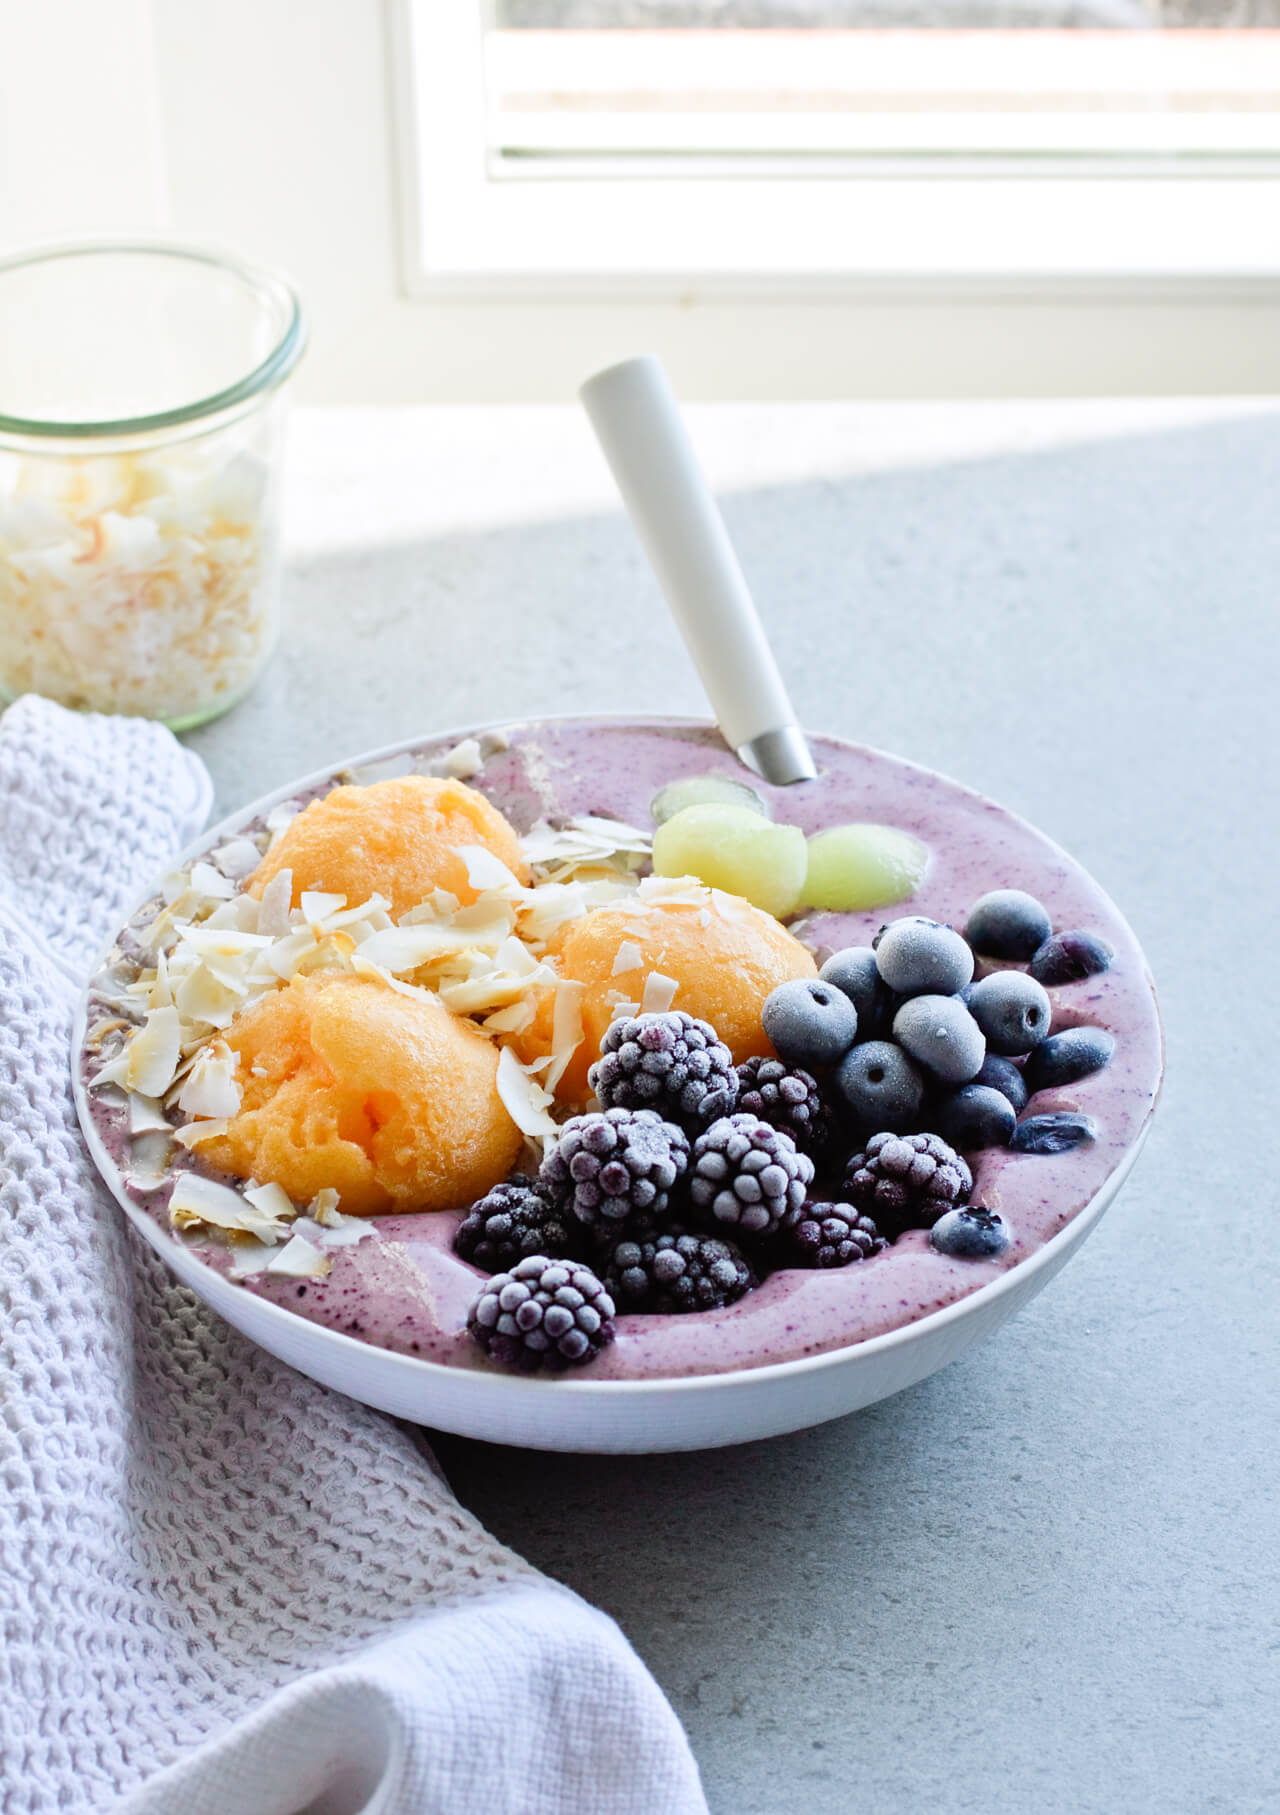 Berry banana frozen smoothie bowl, made with vanilla yogurt, acai powder and a lot of fruit! Topped with some peach sorbet and coconut chips for extra flavor. A great, healthy breakfast or even lunch. | sugarsalted.com